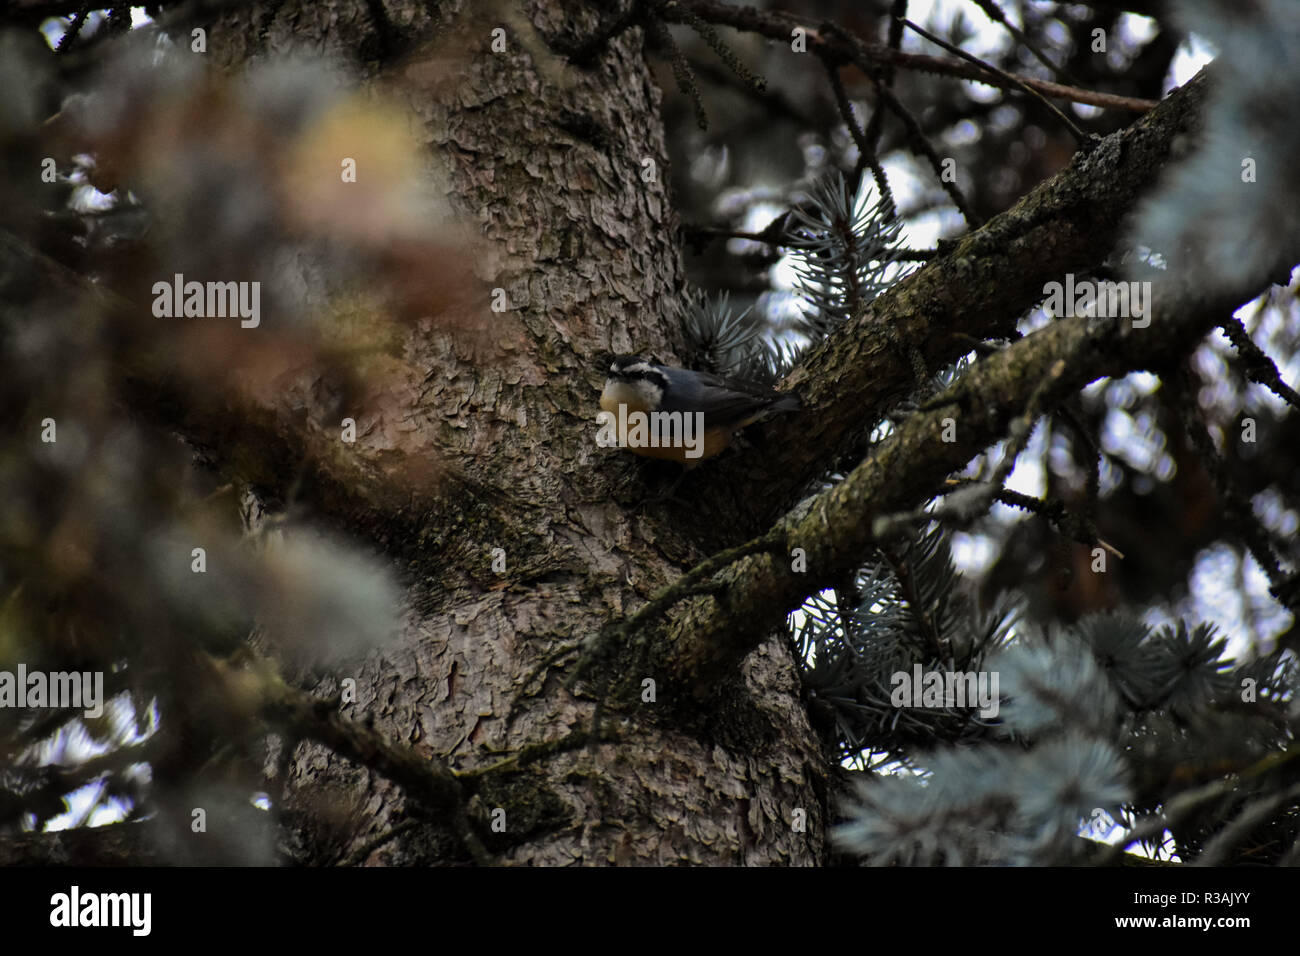 Red Breasted nuthatch in the process of storing some food in the bark of a pine tree. These are some of the smallest birds found here in Michigan. - Stock Image